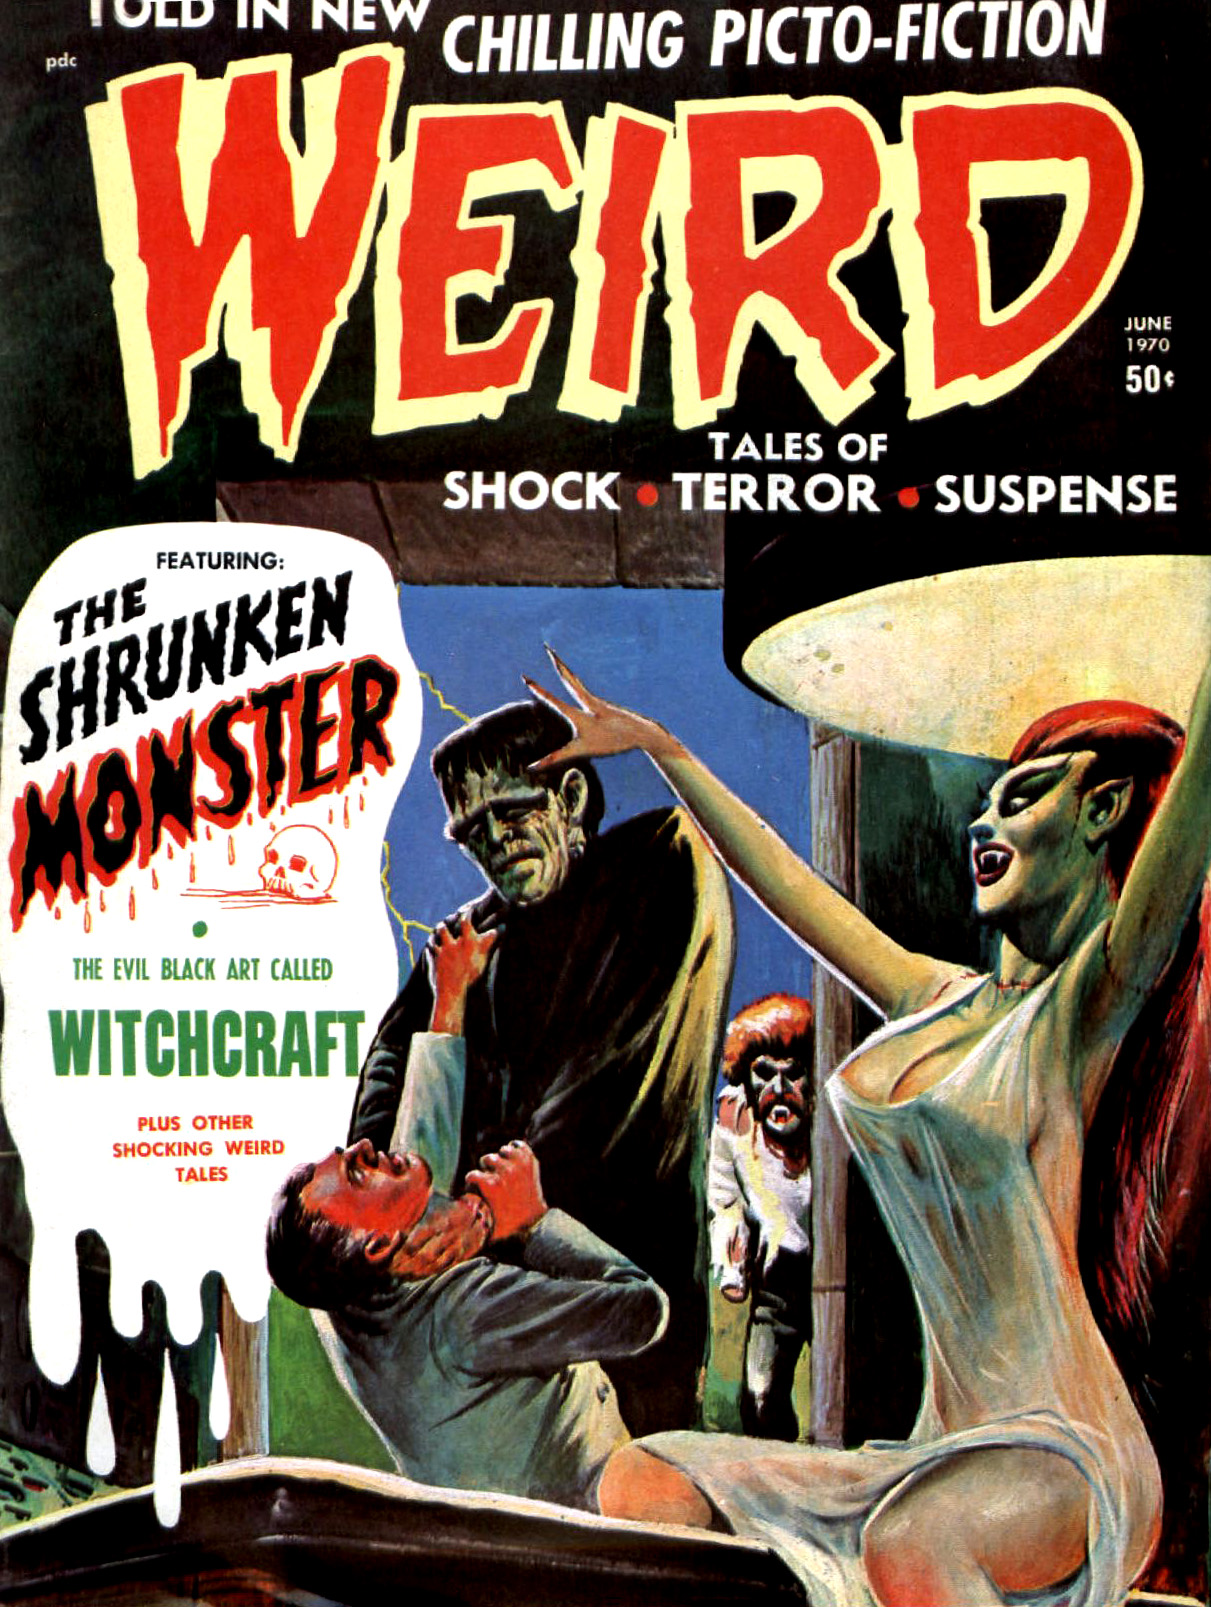 Weird Vol. 4 #3 (Eerie Publications, 1970)